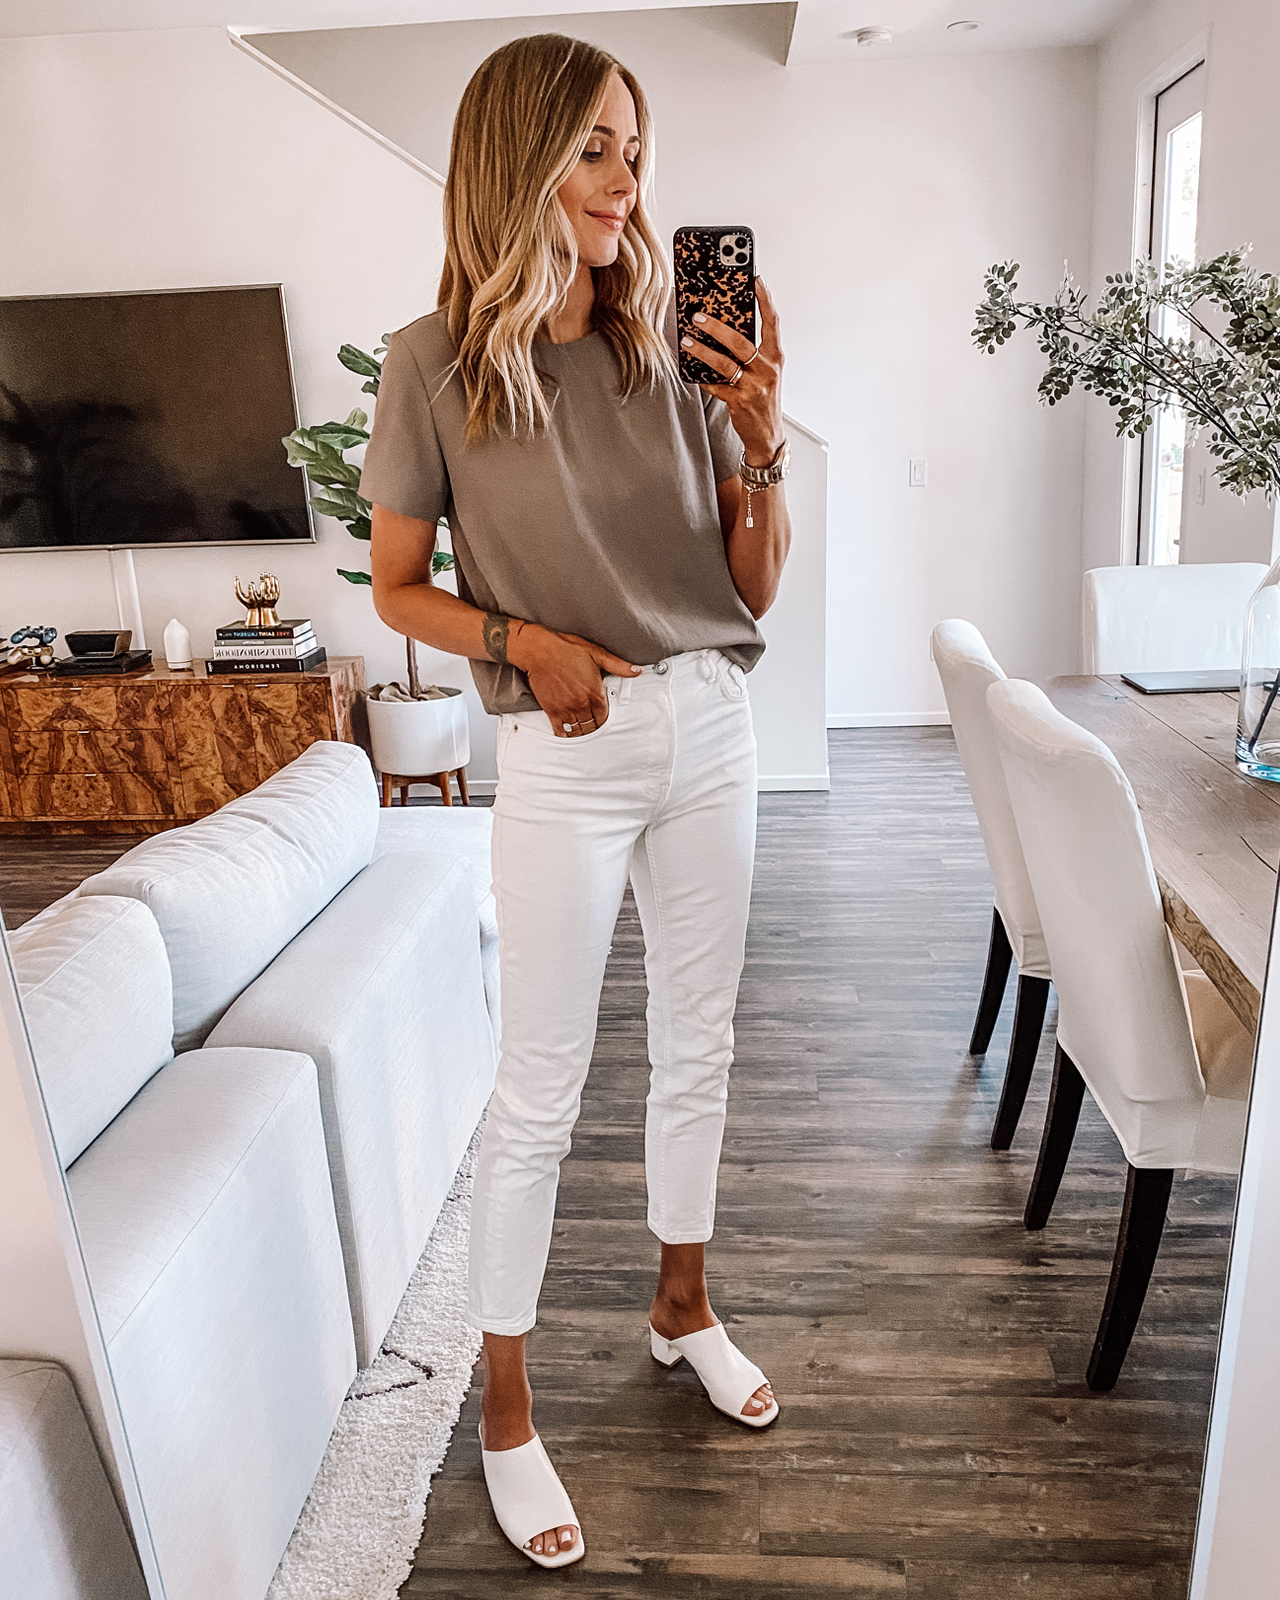 Fashion Jackson Wearing Everlane Tan Short Sleeve Blouse White Jeans White Heeled Mules